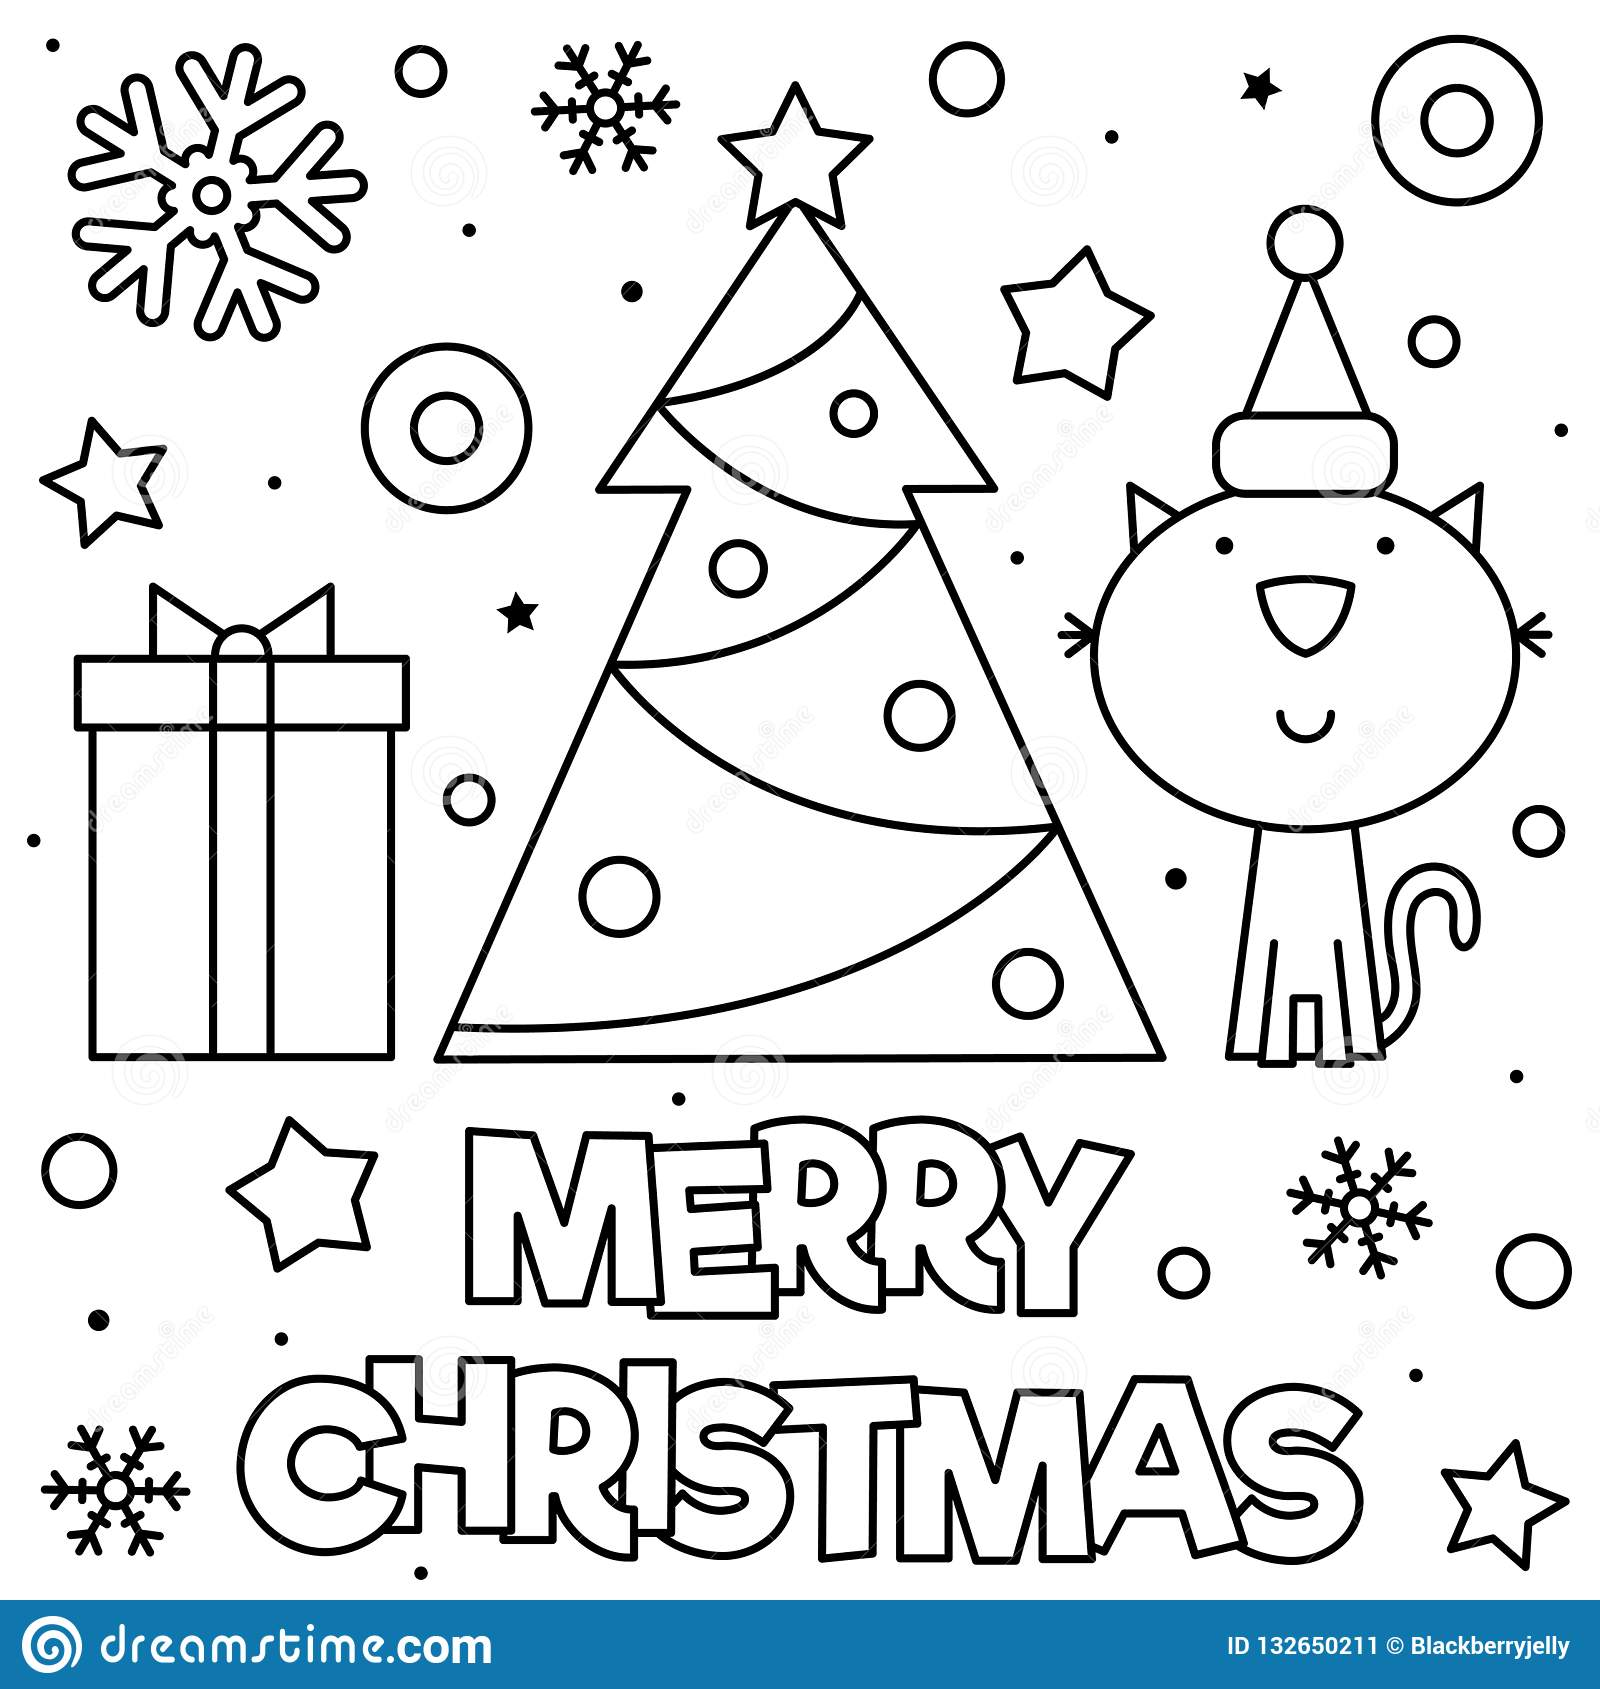 Merry Christmas Coloring Page Black And White Vector Illustration Stock Vector Illustration Of Antistress Colorless 132650211